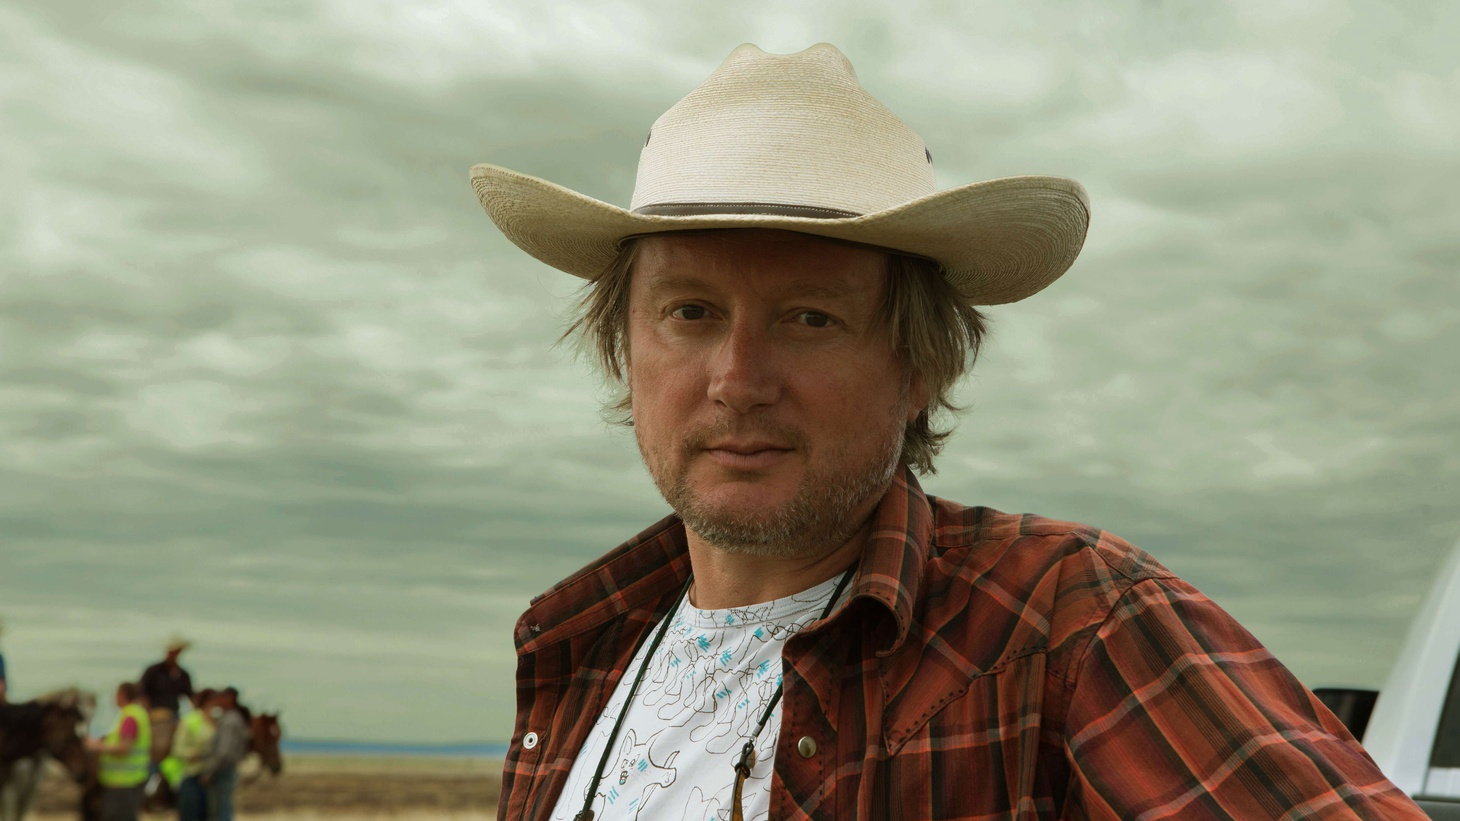 Hell or High Water director David Mackenzie is Scottish, but he was instantly drawn to the Texas tale of two brothers turned bank robbers in the drought-stricken, post-recession American West. He tells us about his efficient, stripped-down approach to making one of the best-reviewed films of the year.